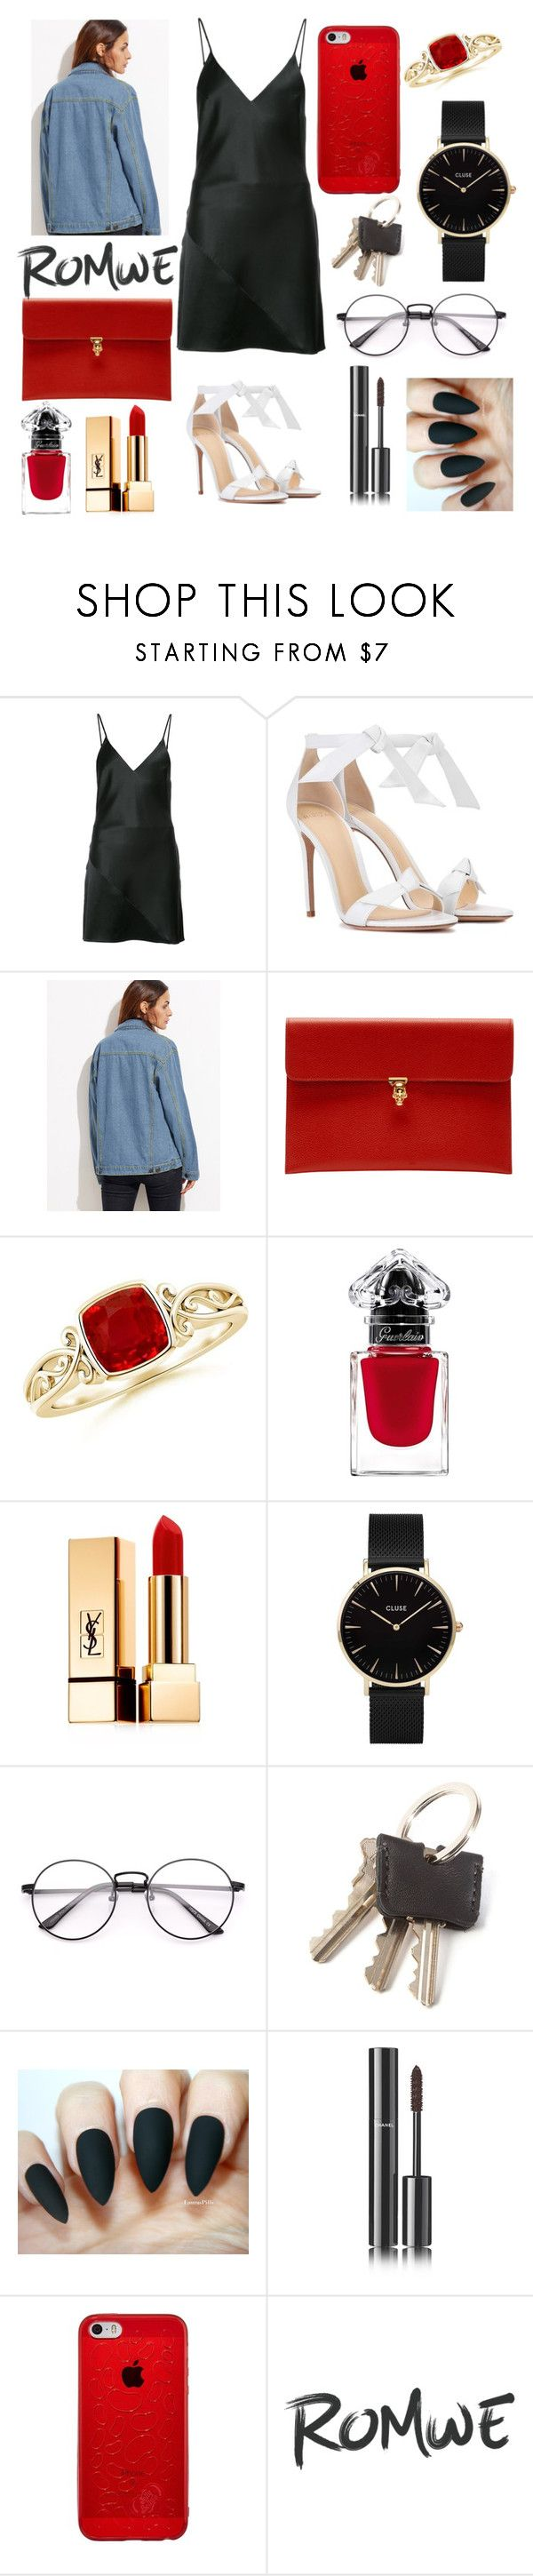 """lalalalala"" by jadabr ❤ liked on Polyvore featuring Fleur du Mal, Alexandre Birman, Alexander McQueen, Yves Saint Laurent, CLUSE and Chanel"